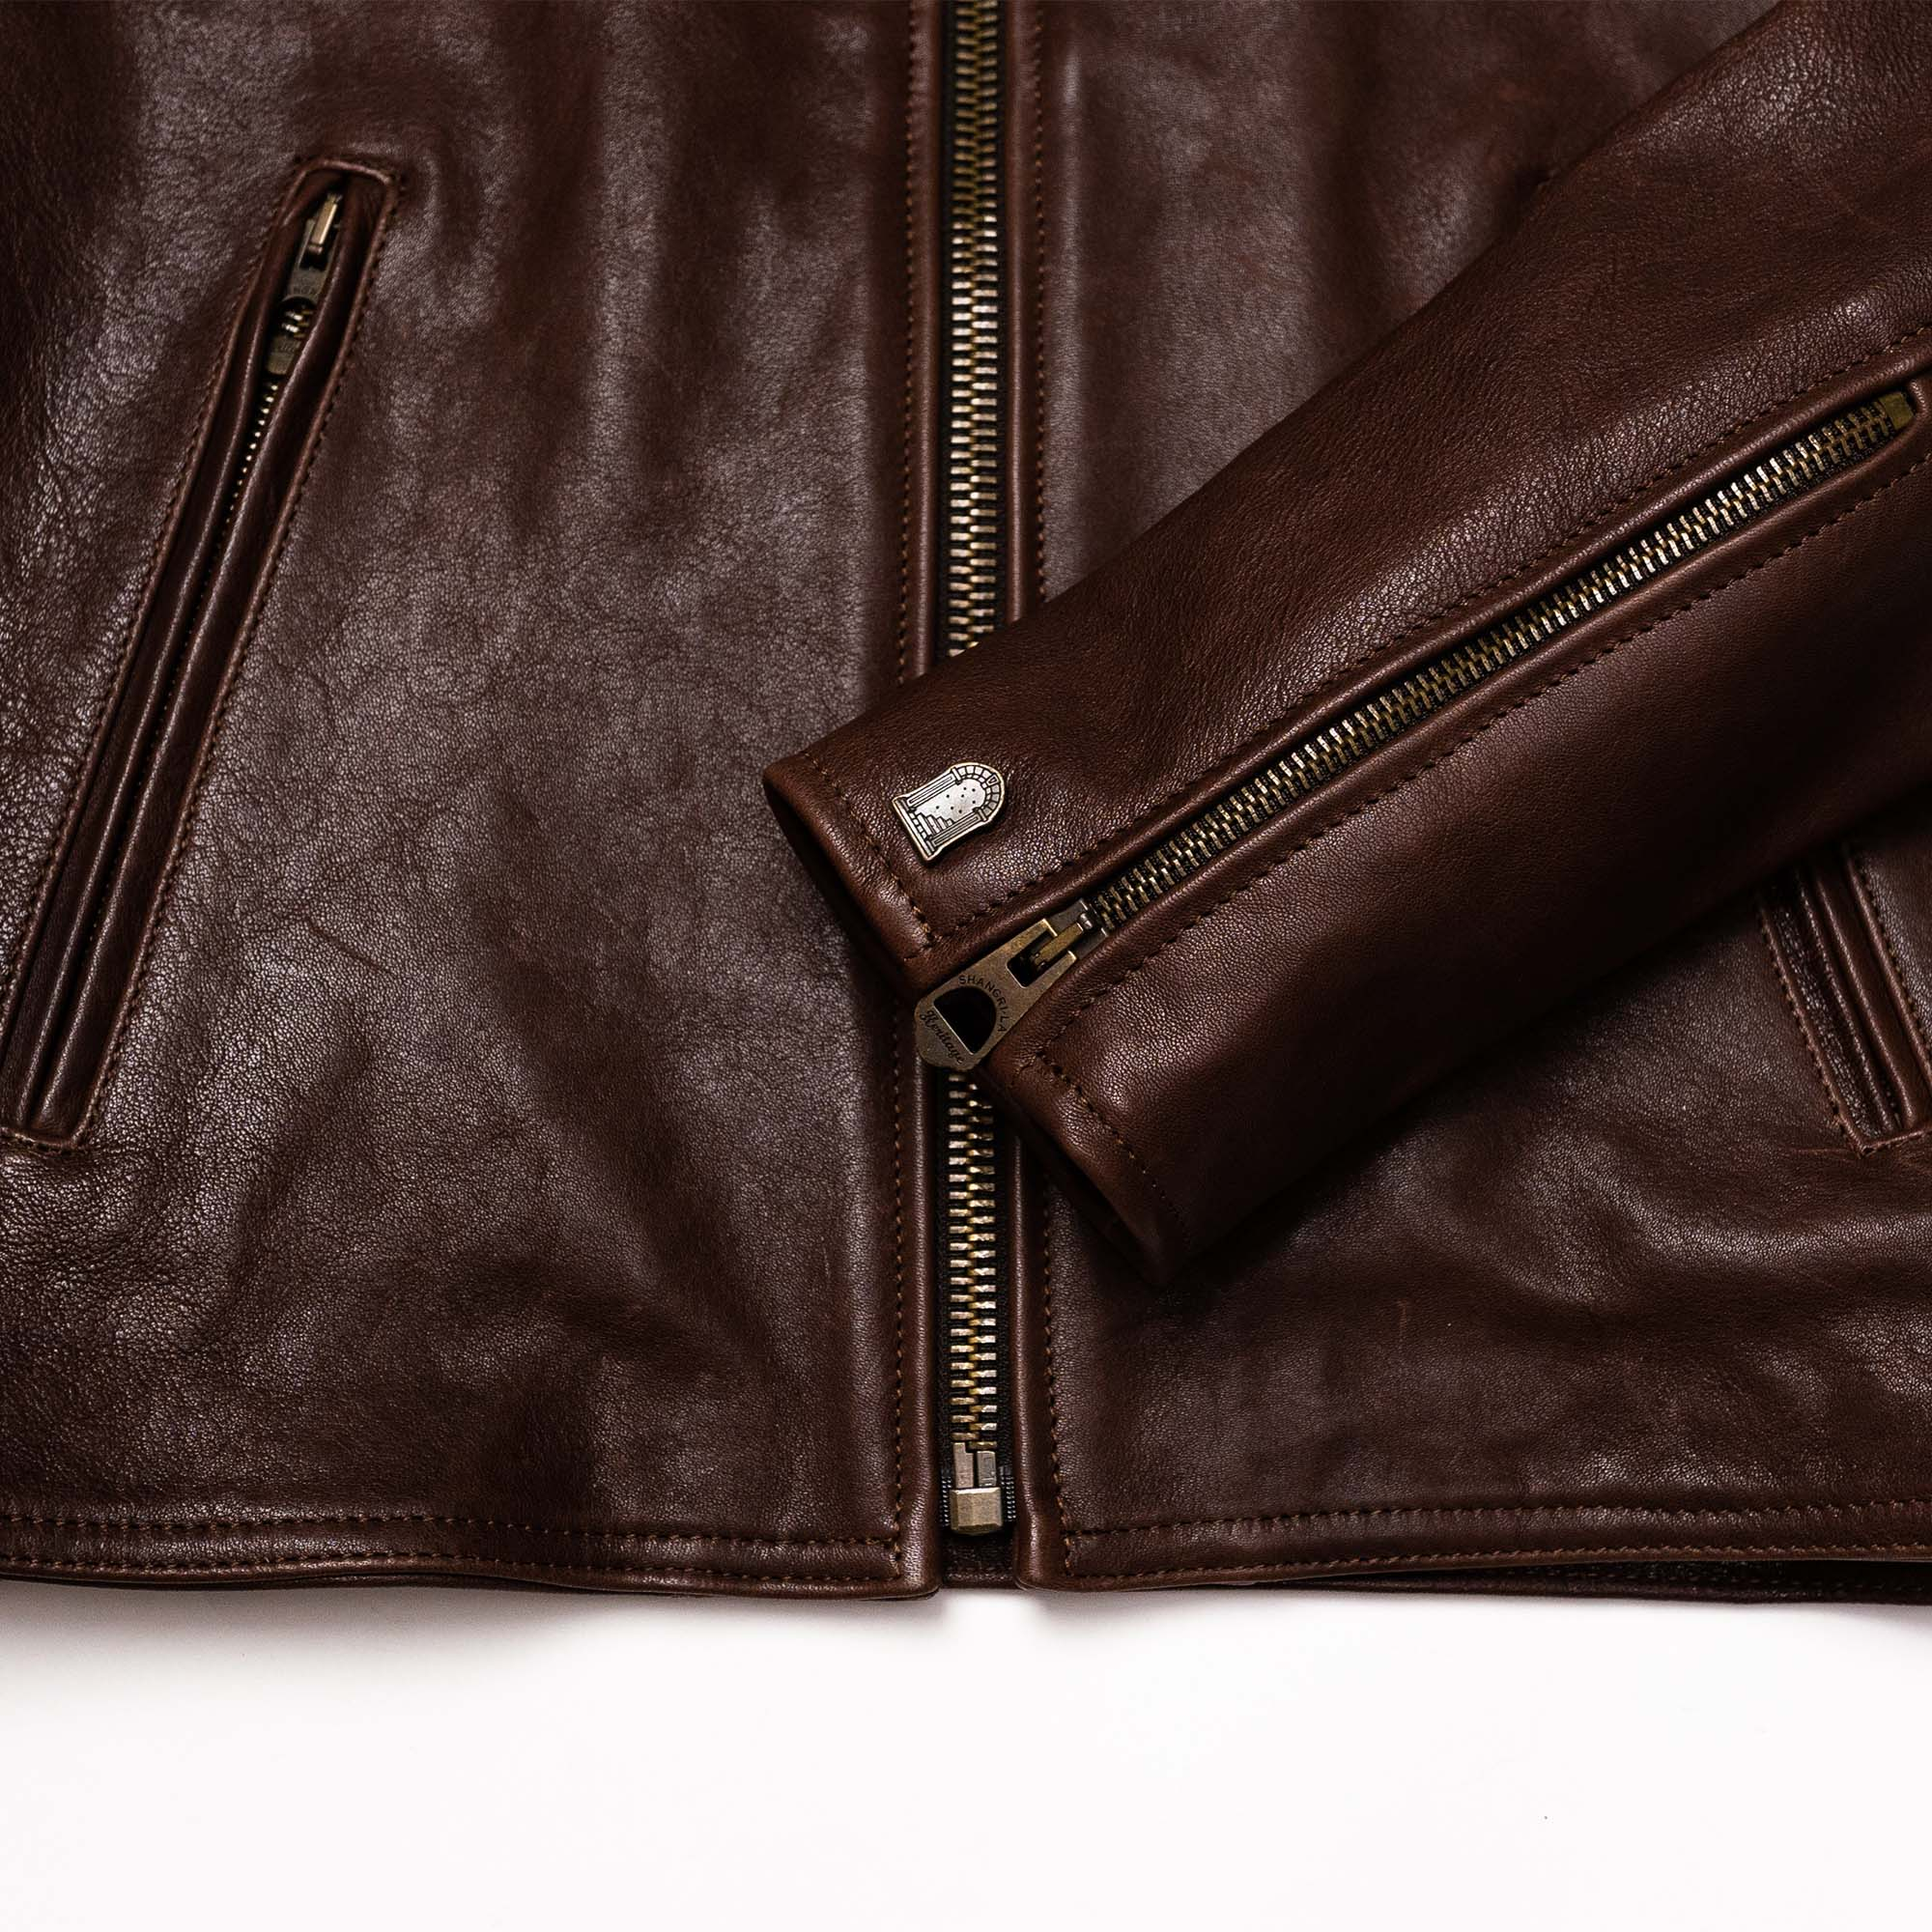 shangri-la-heritage-cafe-racer-brown-lambskin-jacket-still-life-new-sleeve-detail